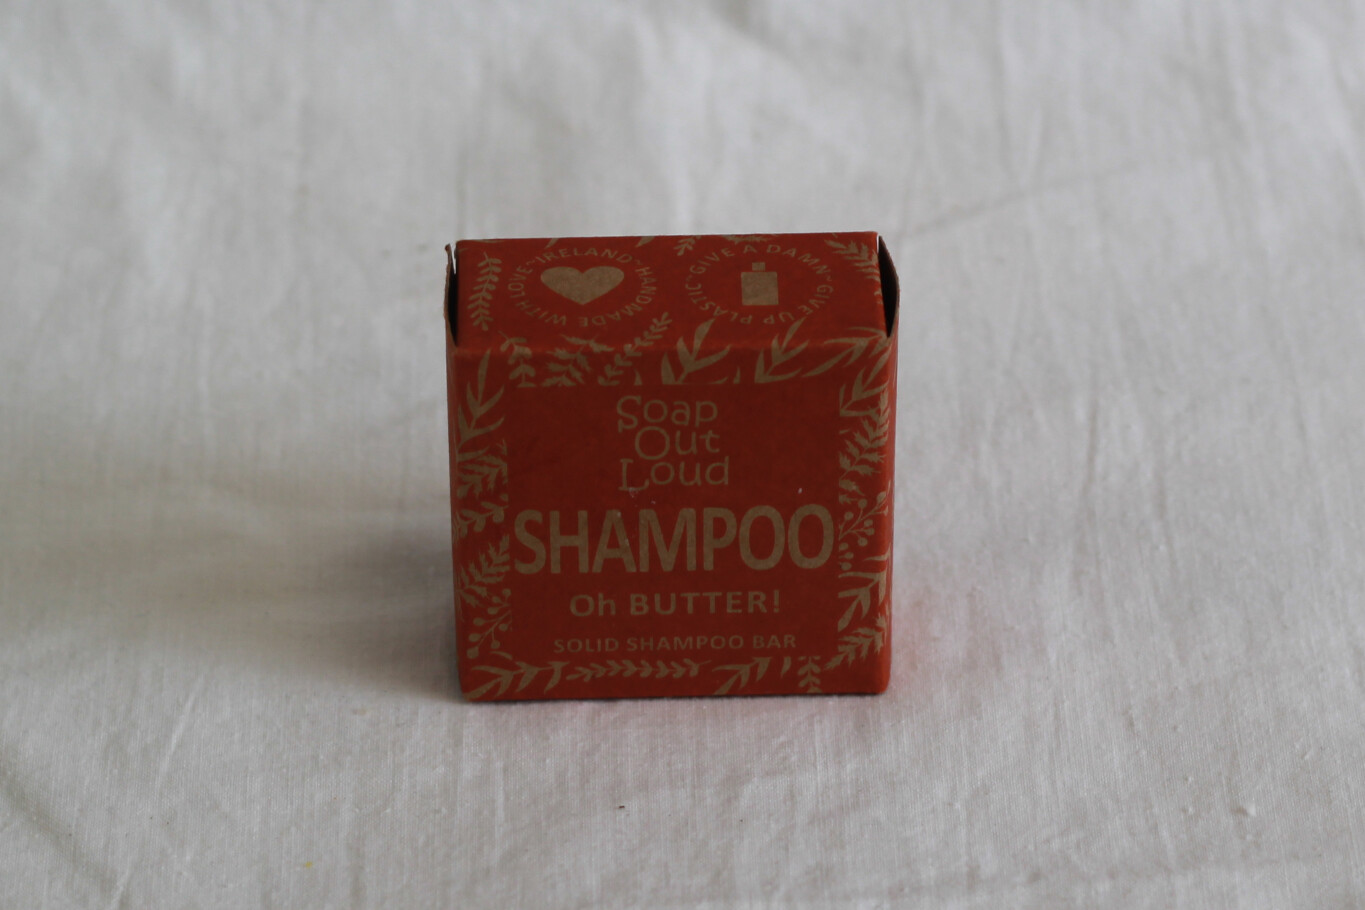 Soap Out Loud Shampoo & Conditioner Bars